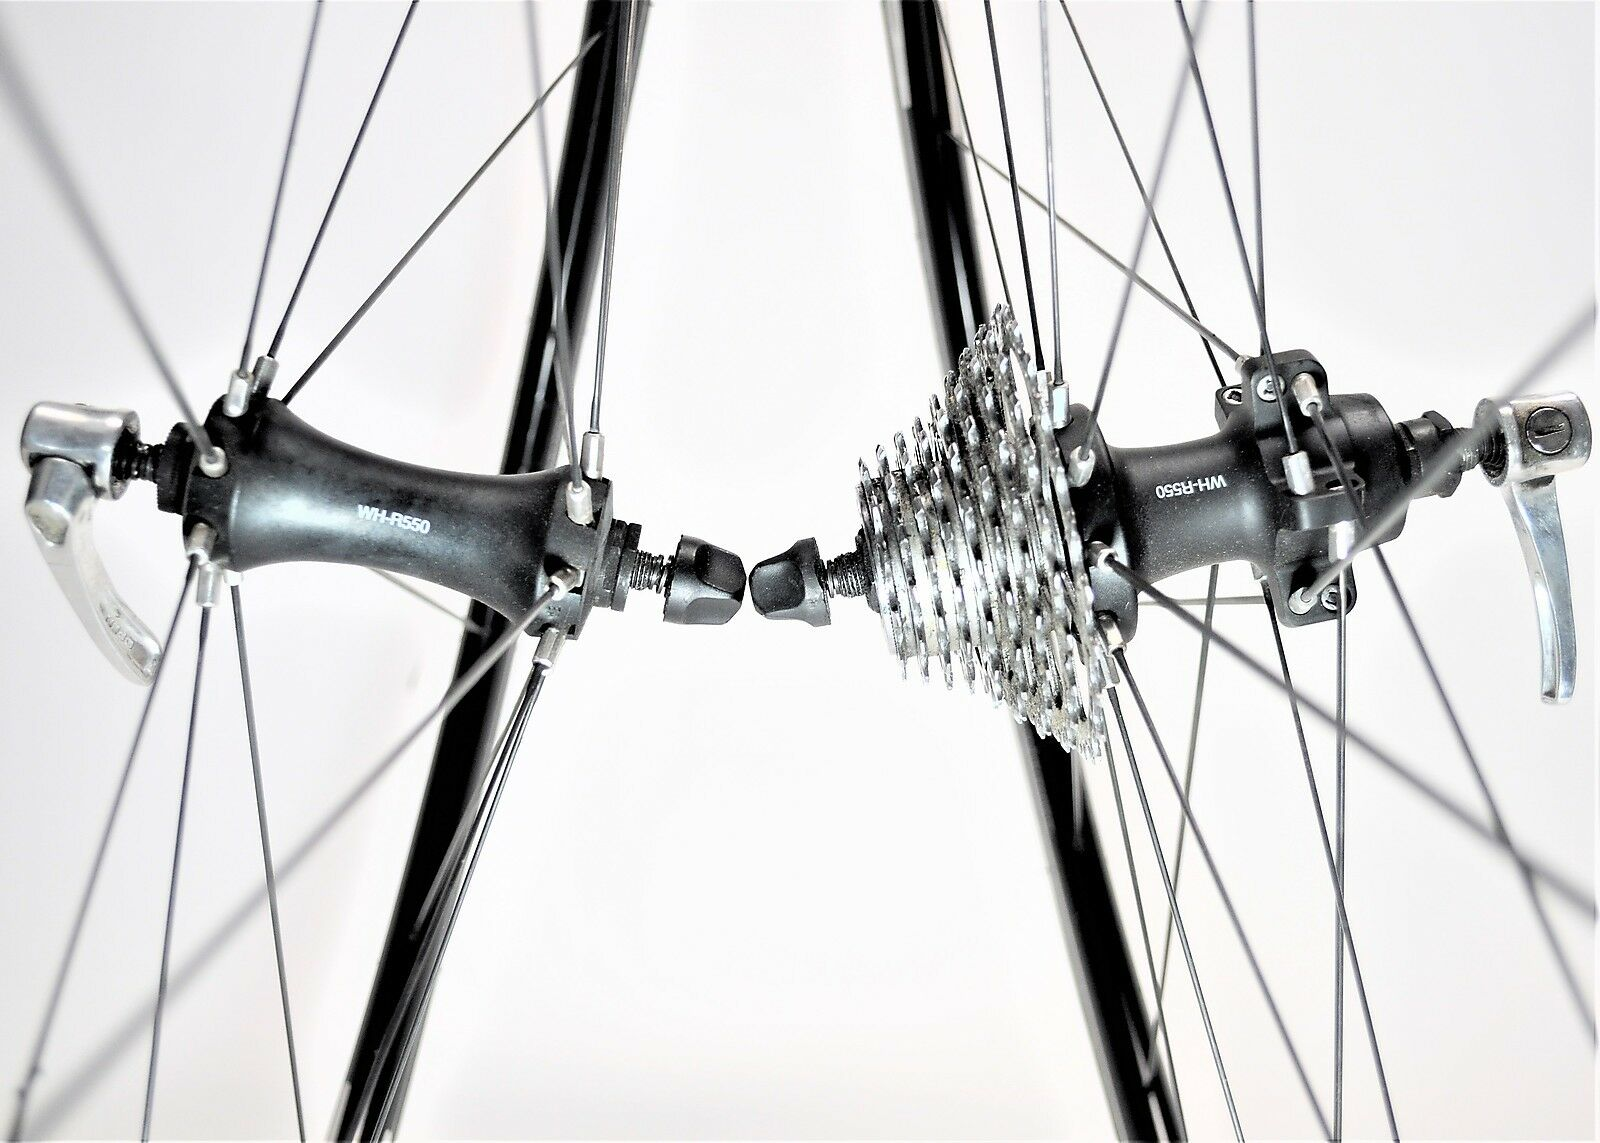 SHIMANO WH-R550 700C X 15 BICYCLE 8 9 10 SPEED STRAIGHT BLADED WHEEL SET 130 MM